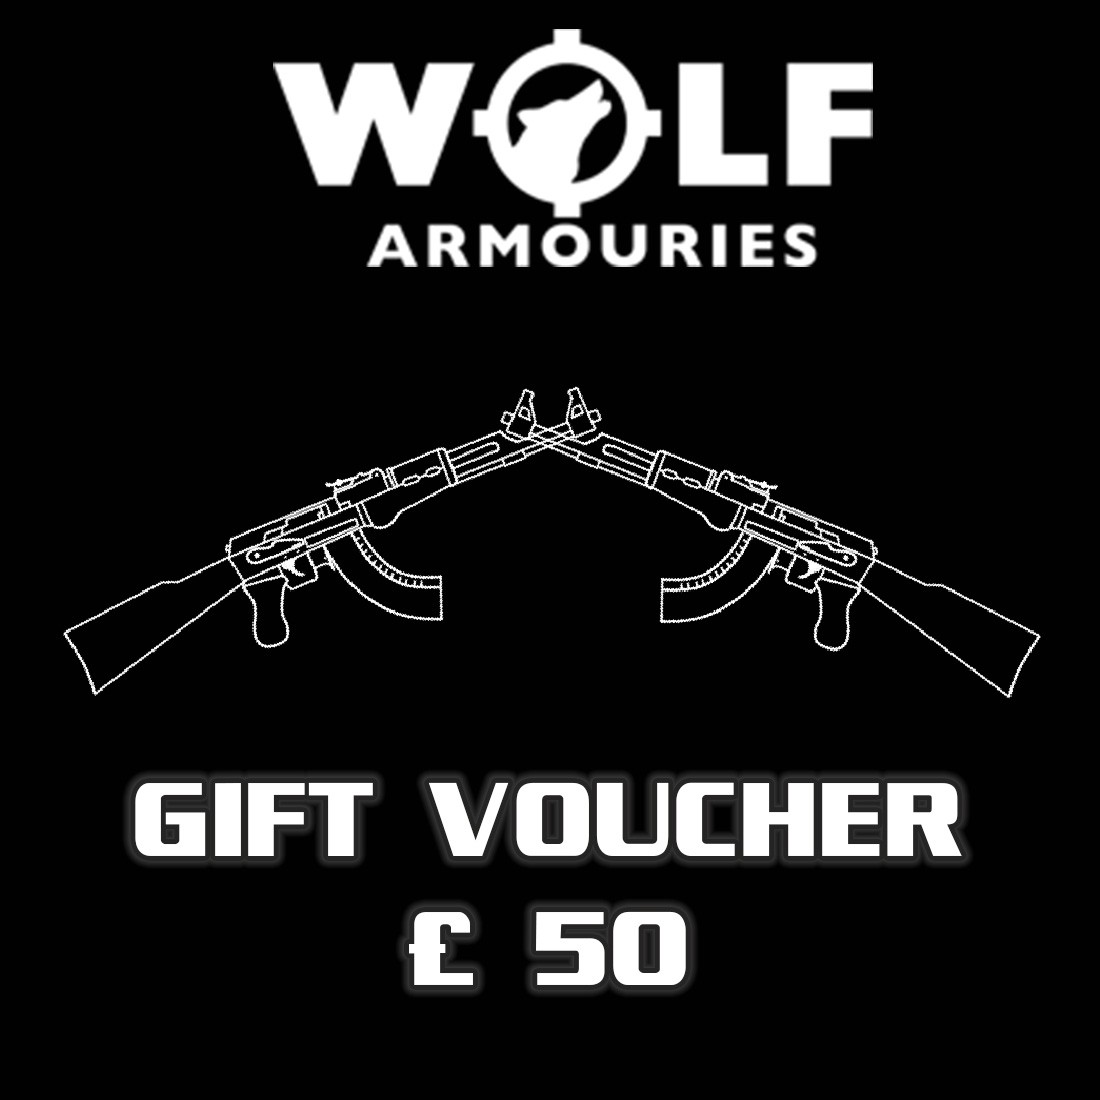 Wolf Armouries Gift Voucher £50